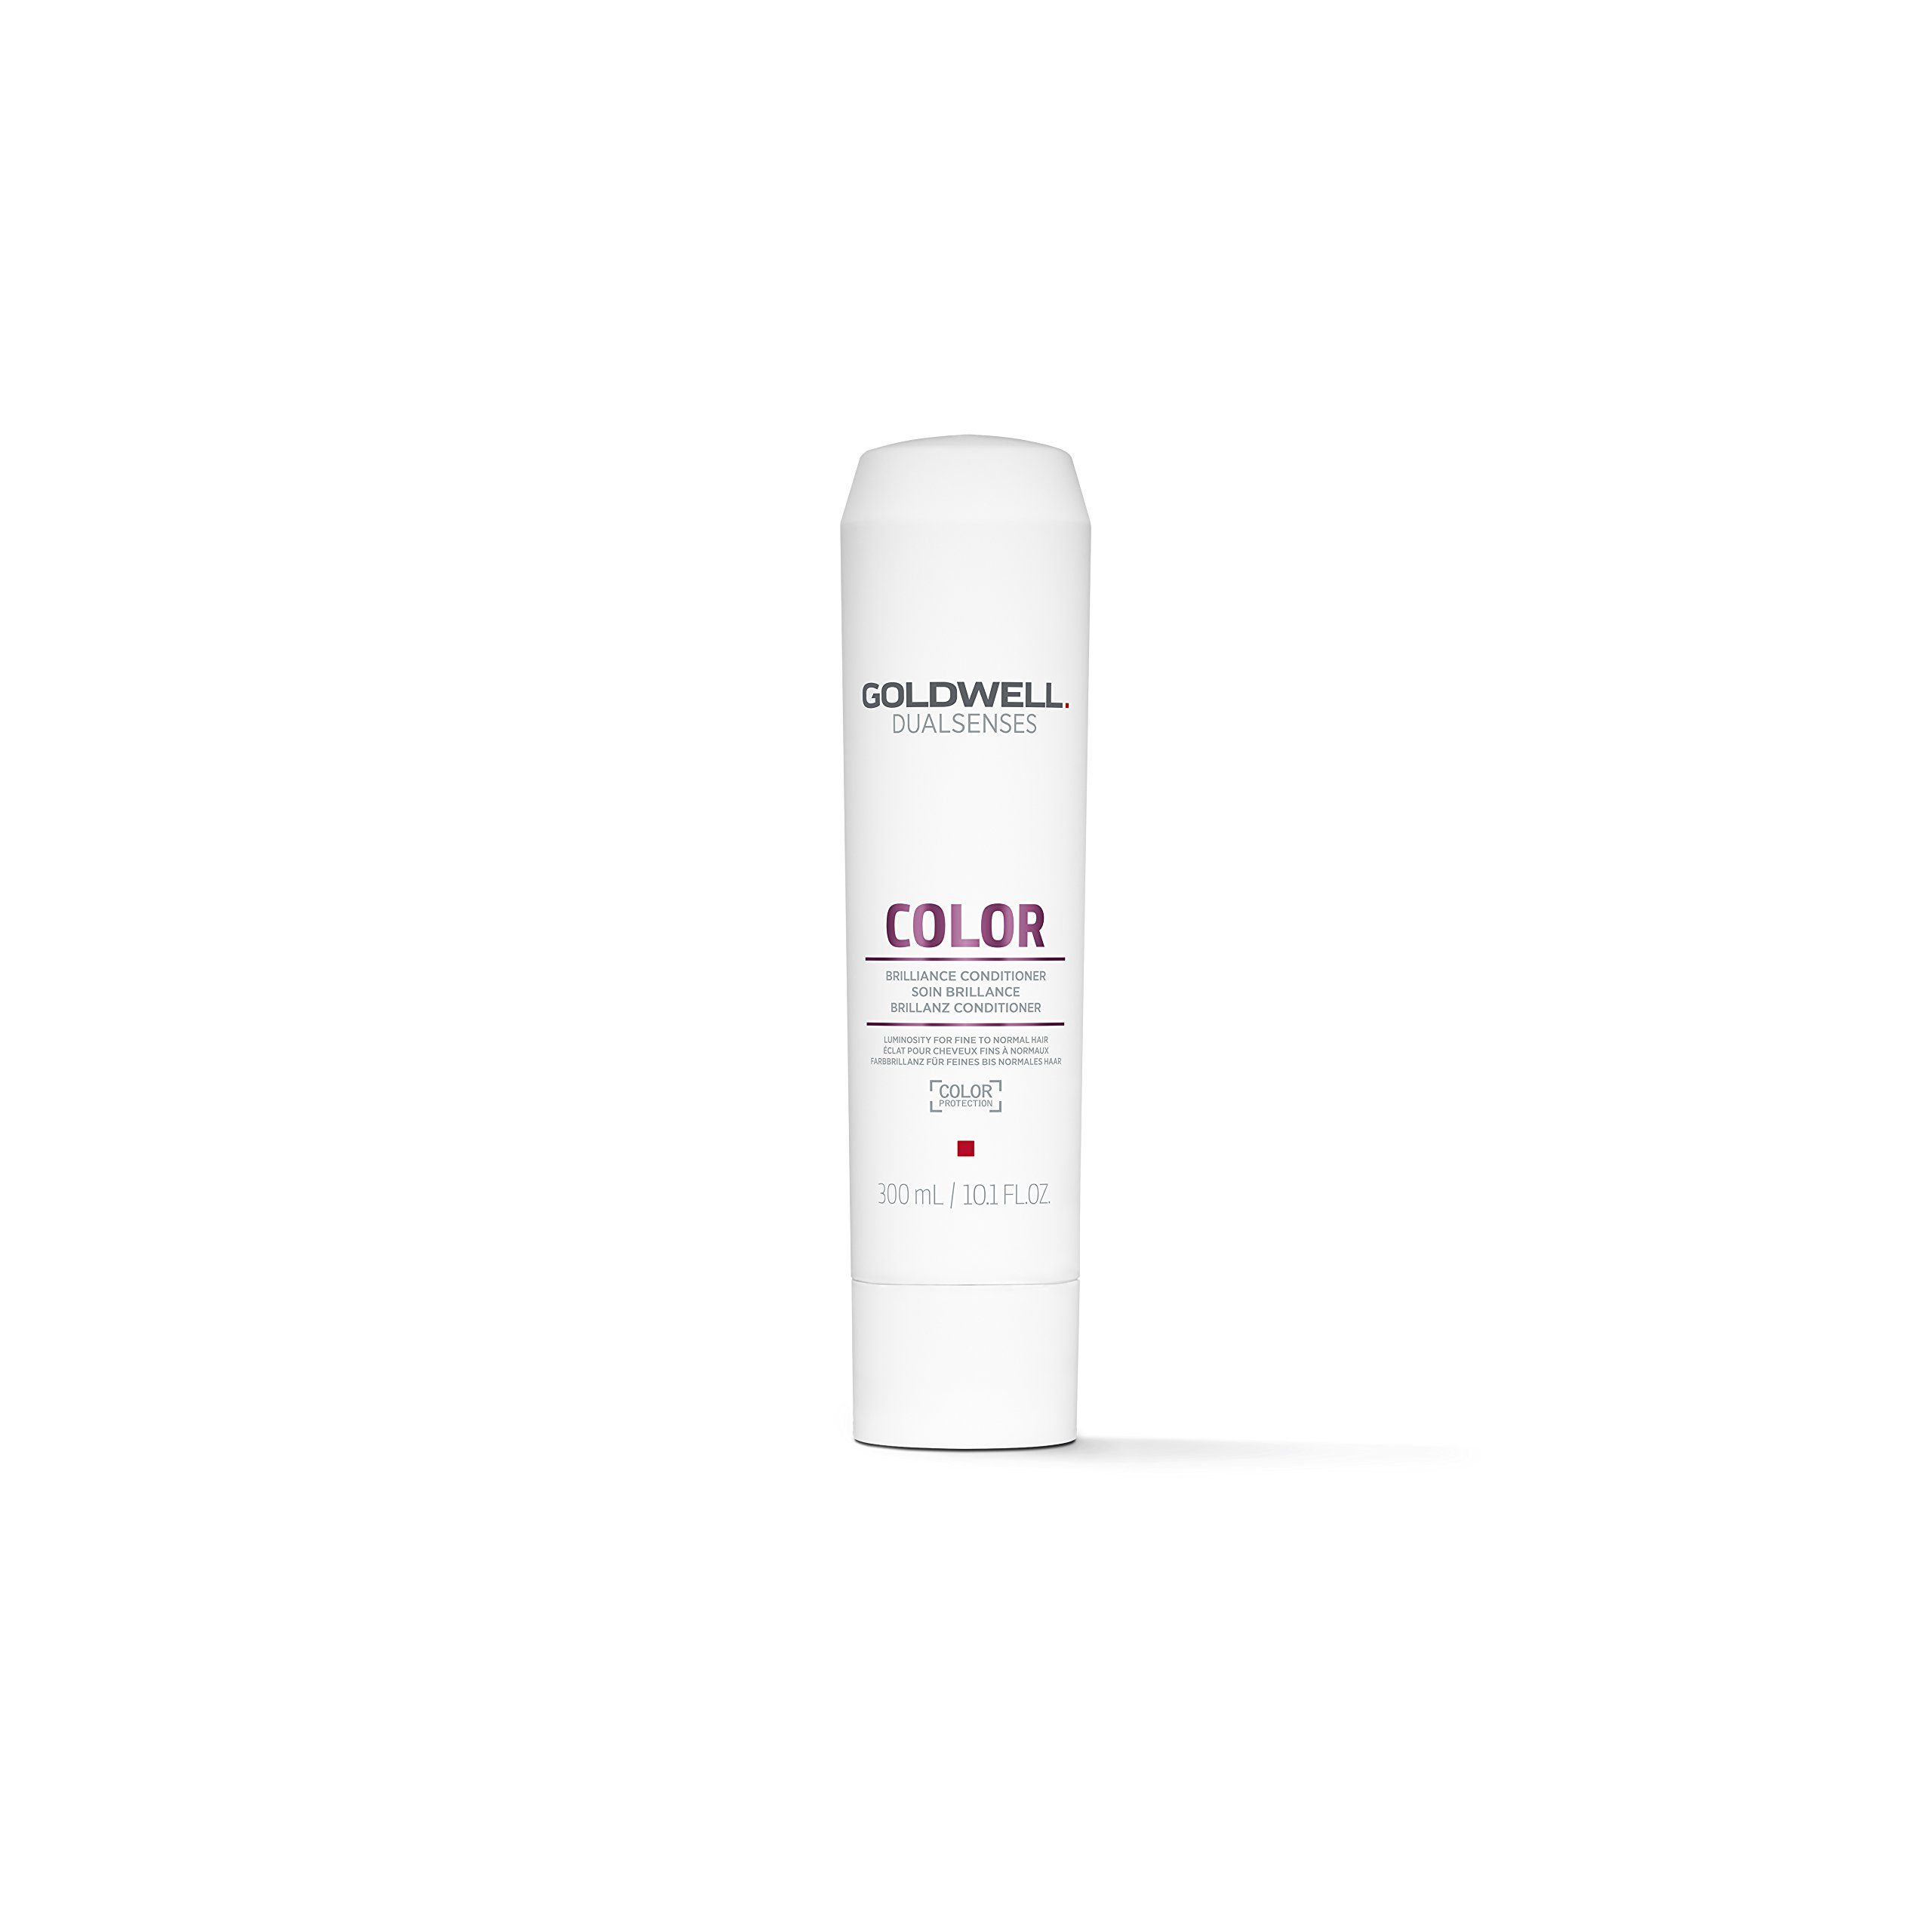 Goldwell Dualsenses Color Brilliance Conditioner Luminous Healthy Hair Minimize Fading - 10.1oz